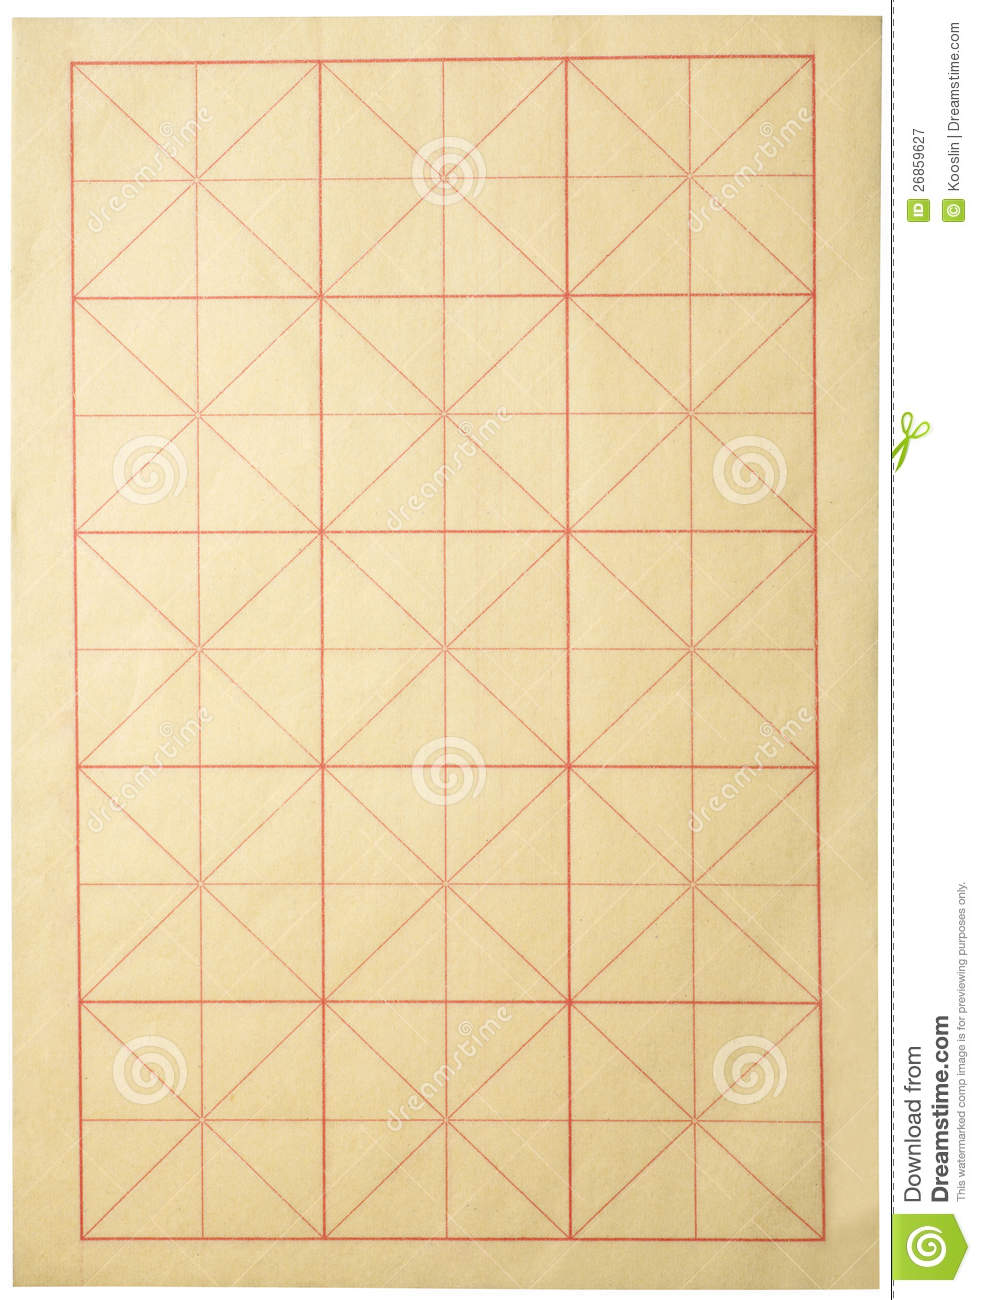 Calligraphy Paper Royalty Free Stock Photography Image